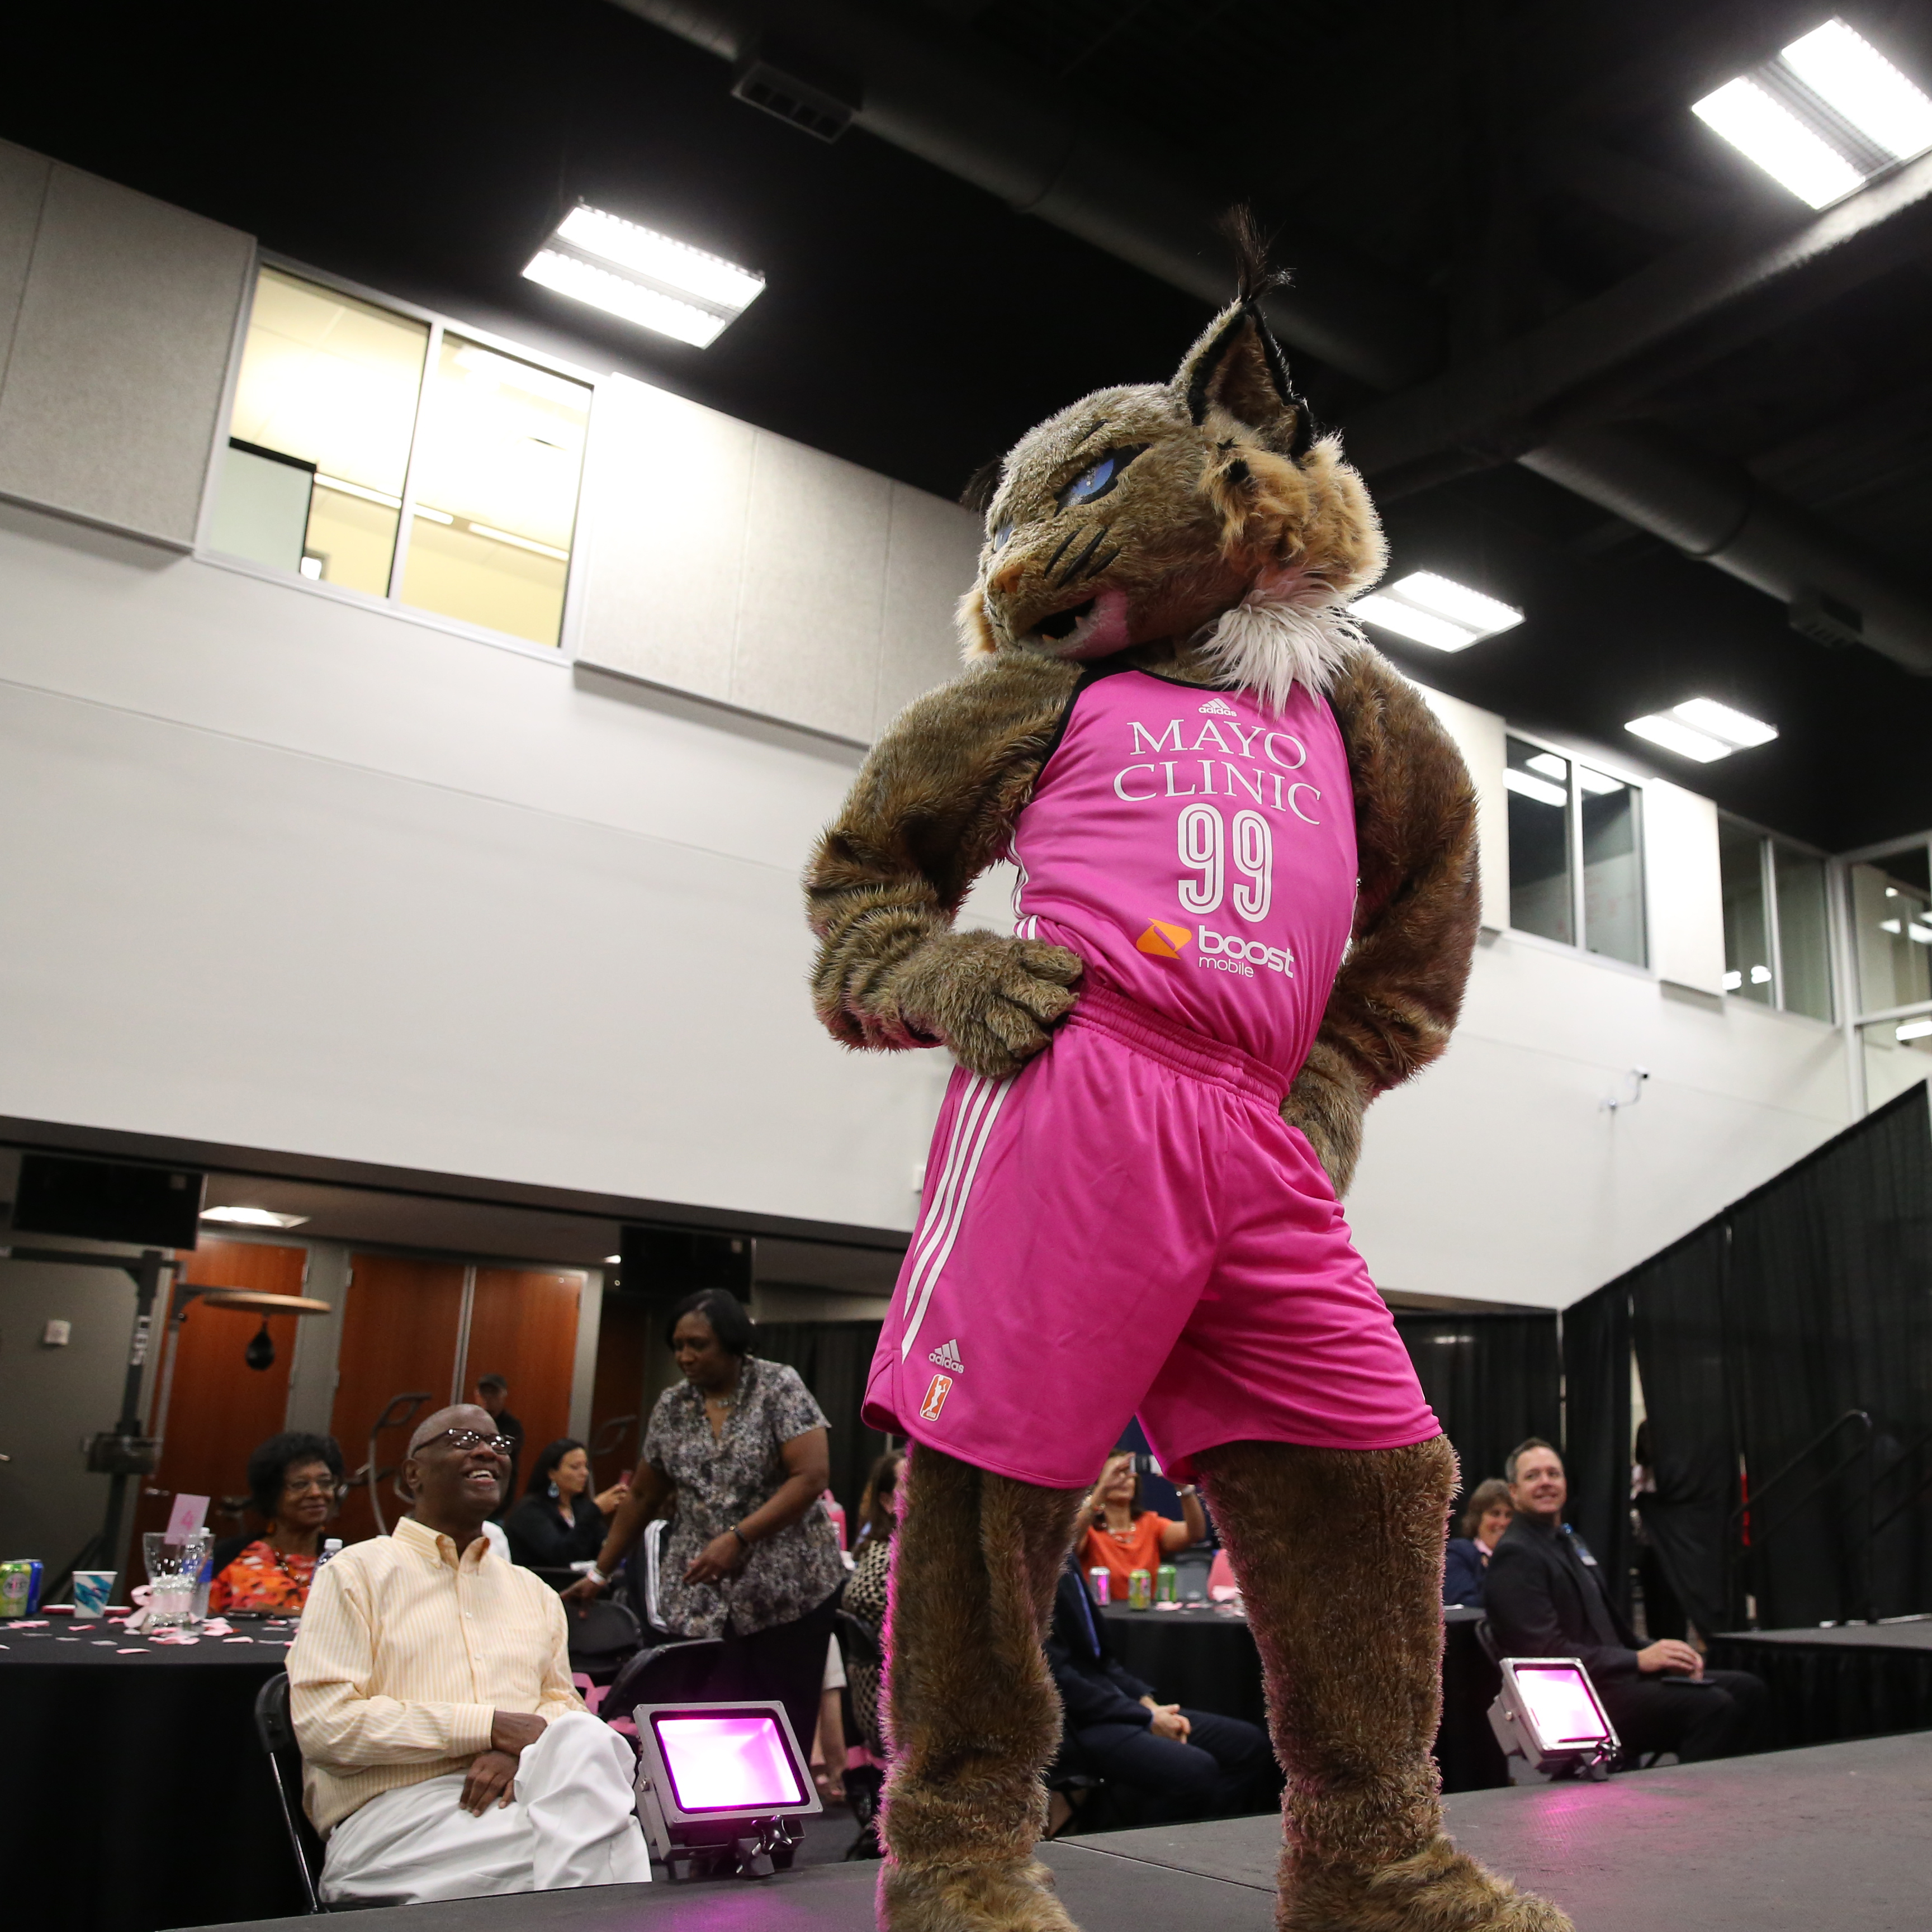 Lynx mascot Prowl even took a turn on the catwalk